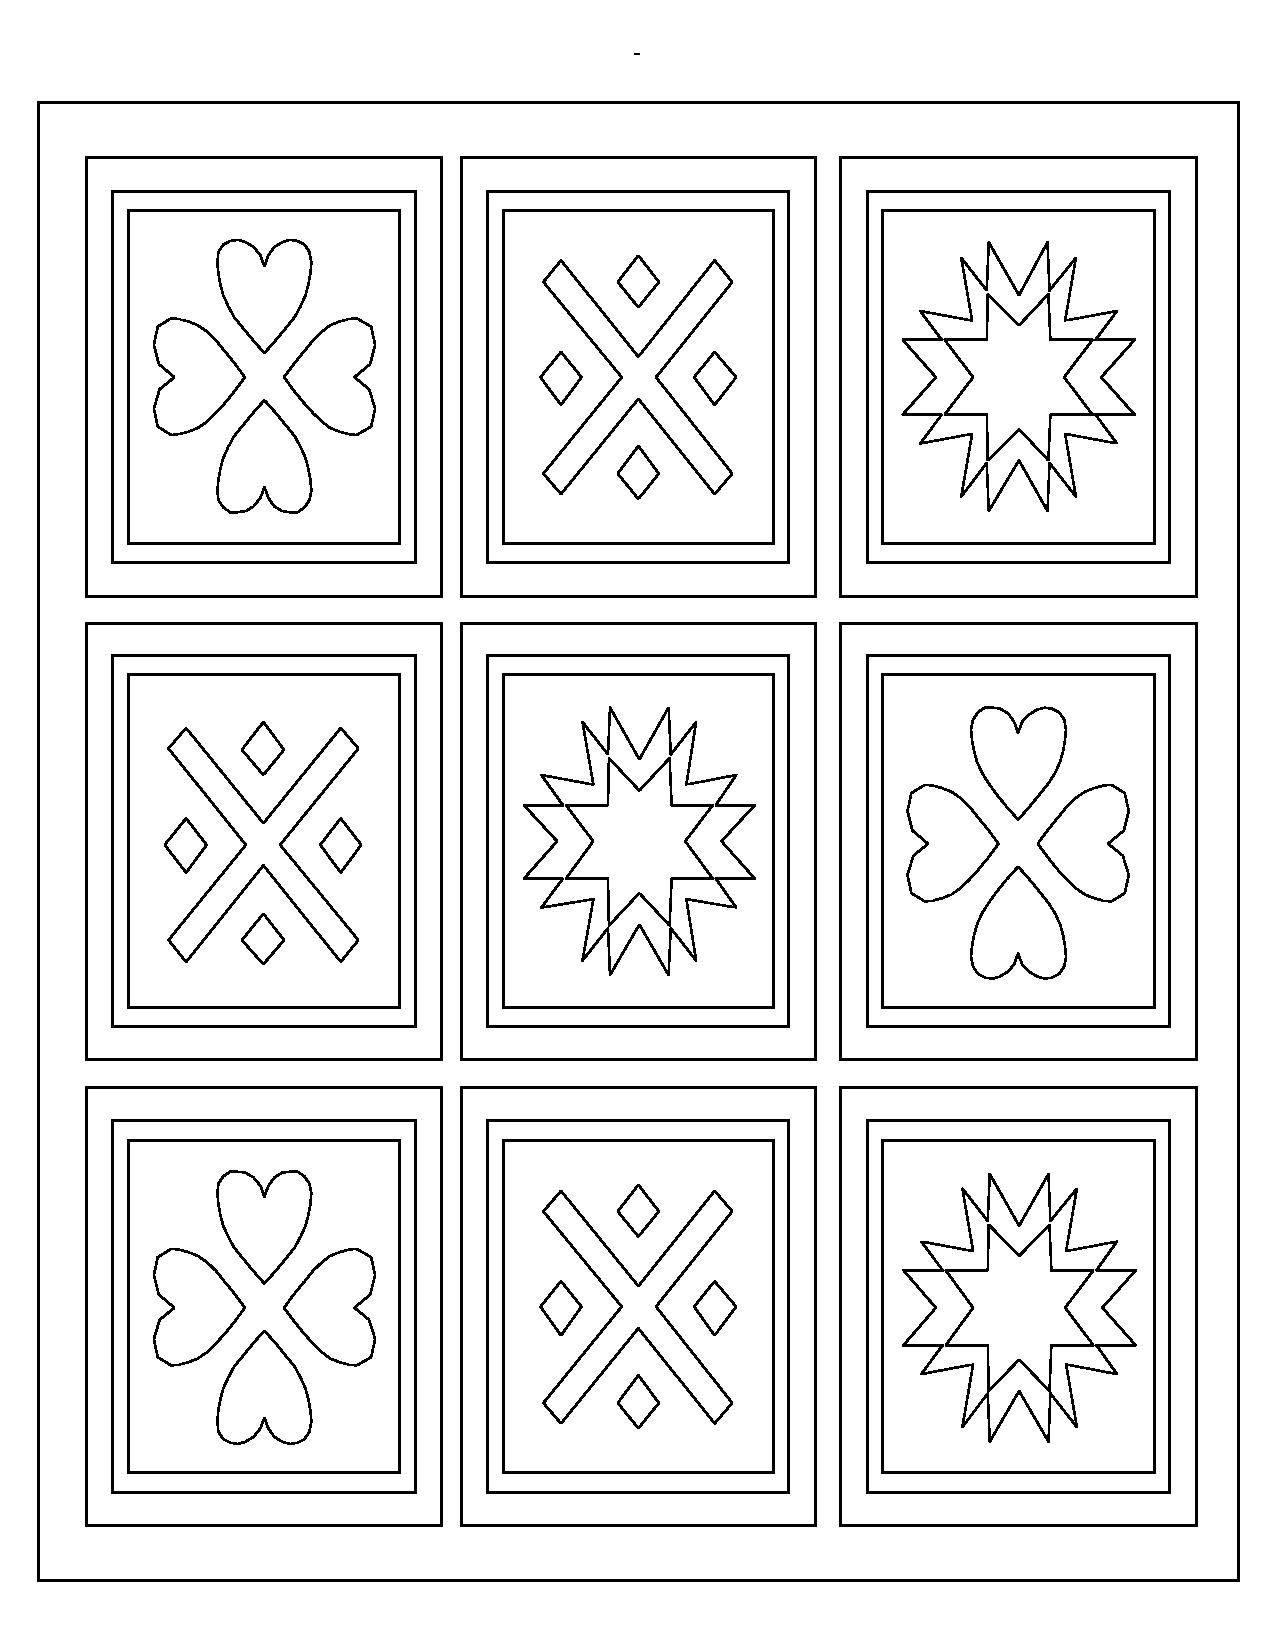 Pattern Coloring Pages For Preschoolers Coloring Page